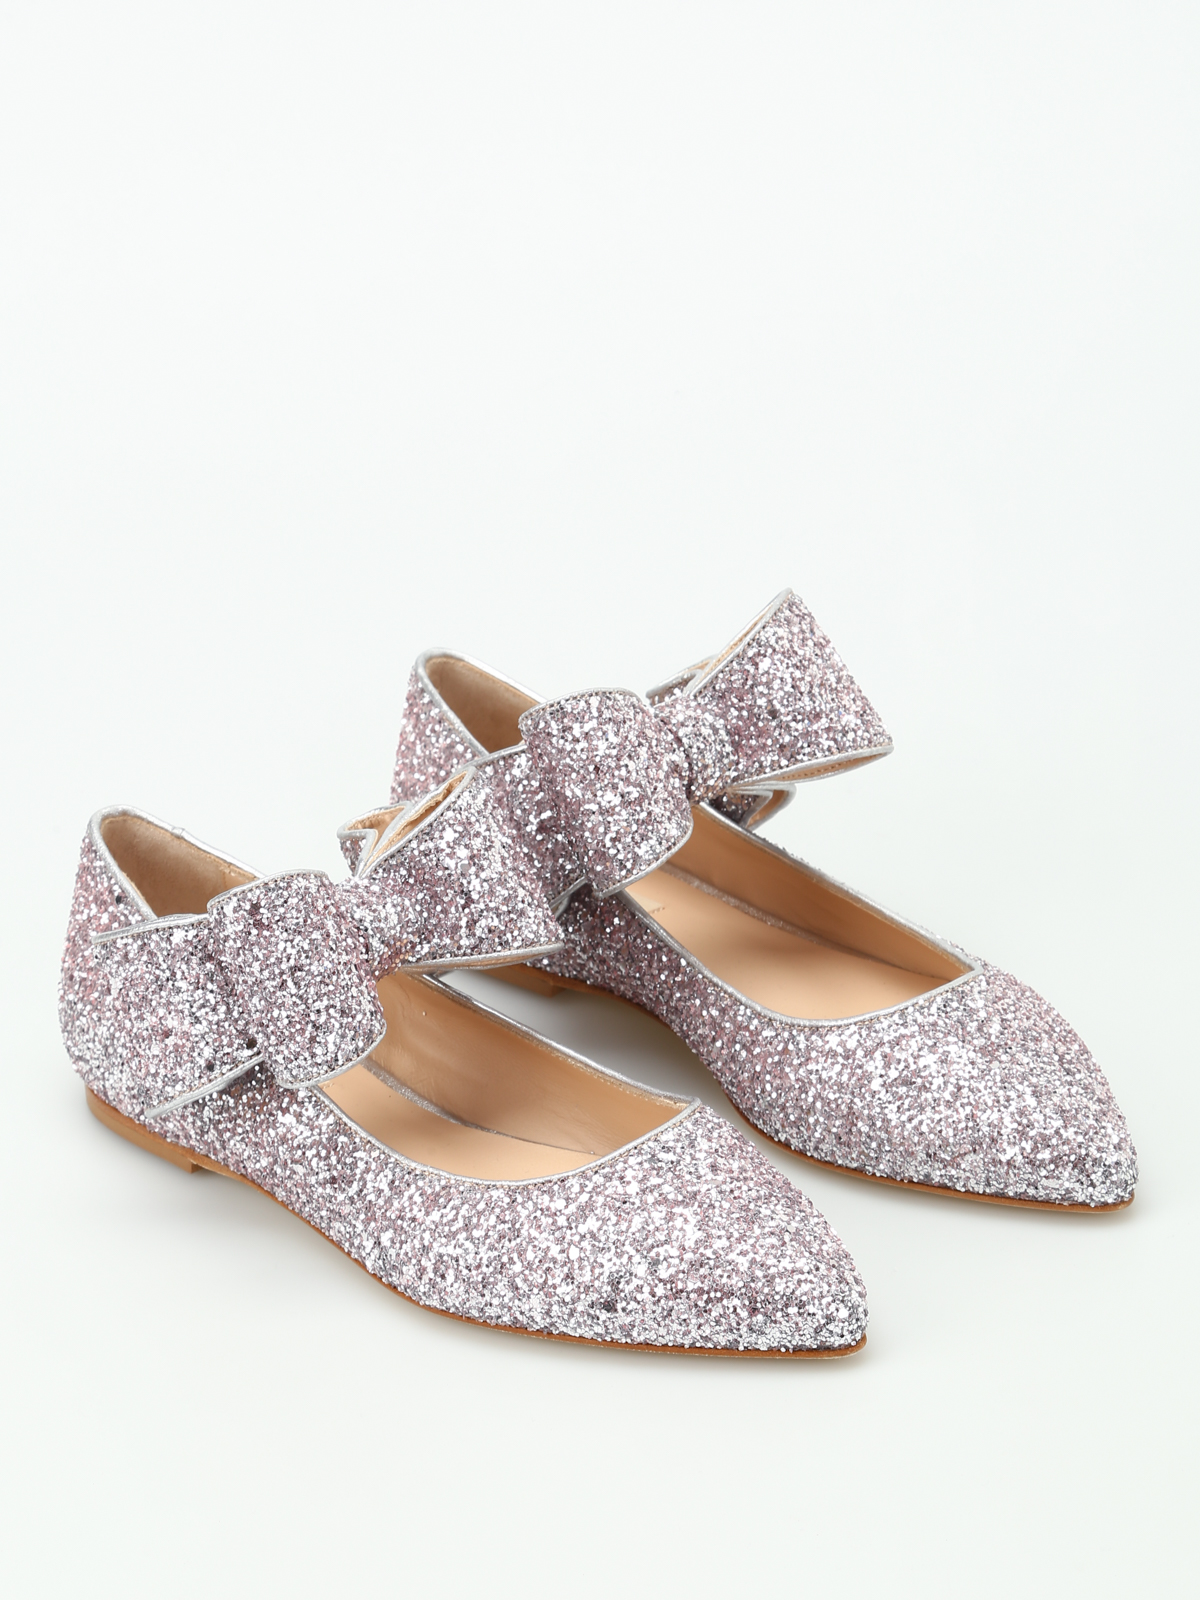 Chaussures - Ballerines Plume Polly AkMpaD